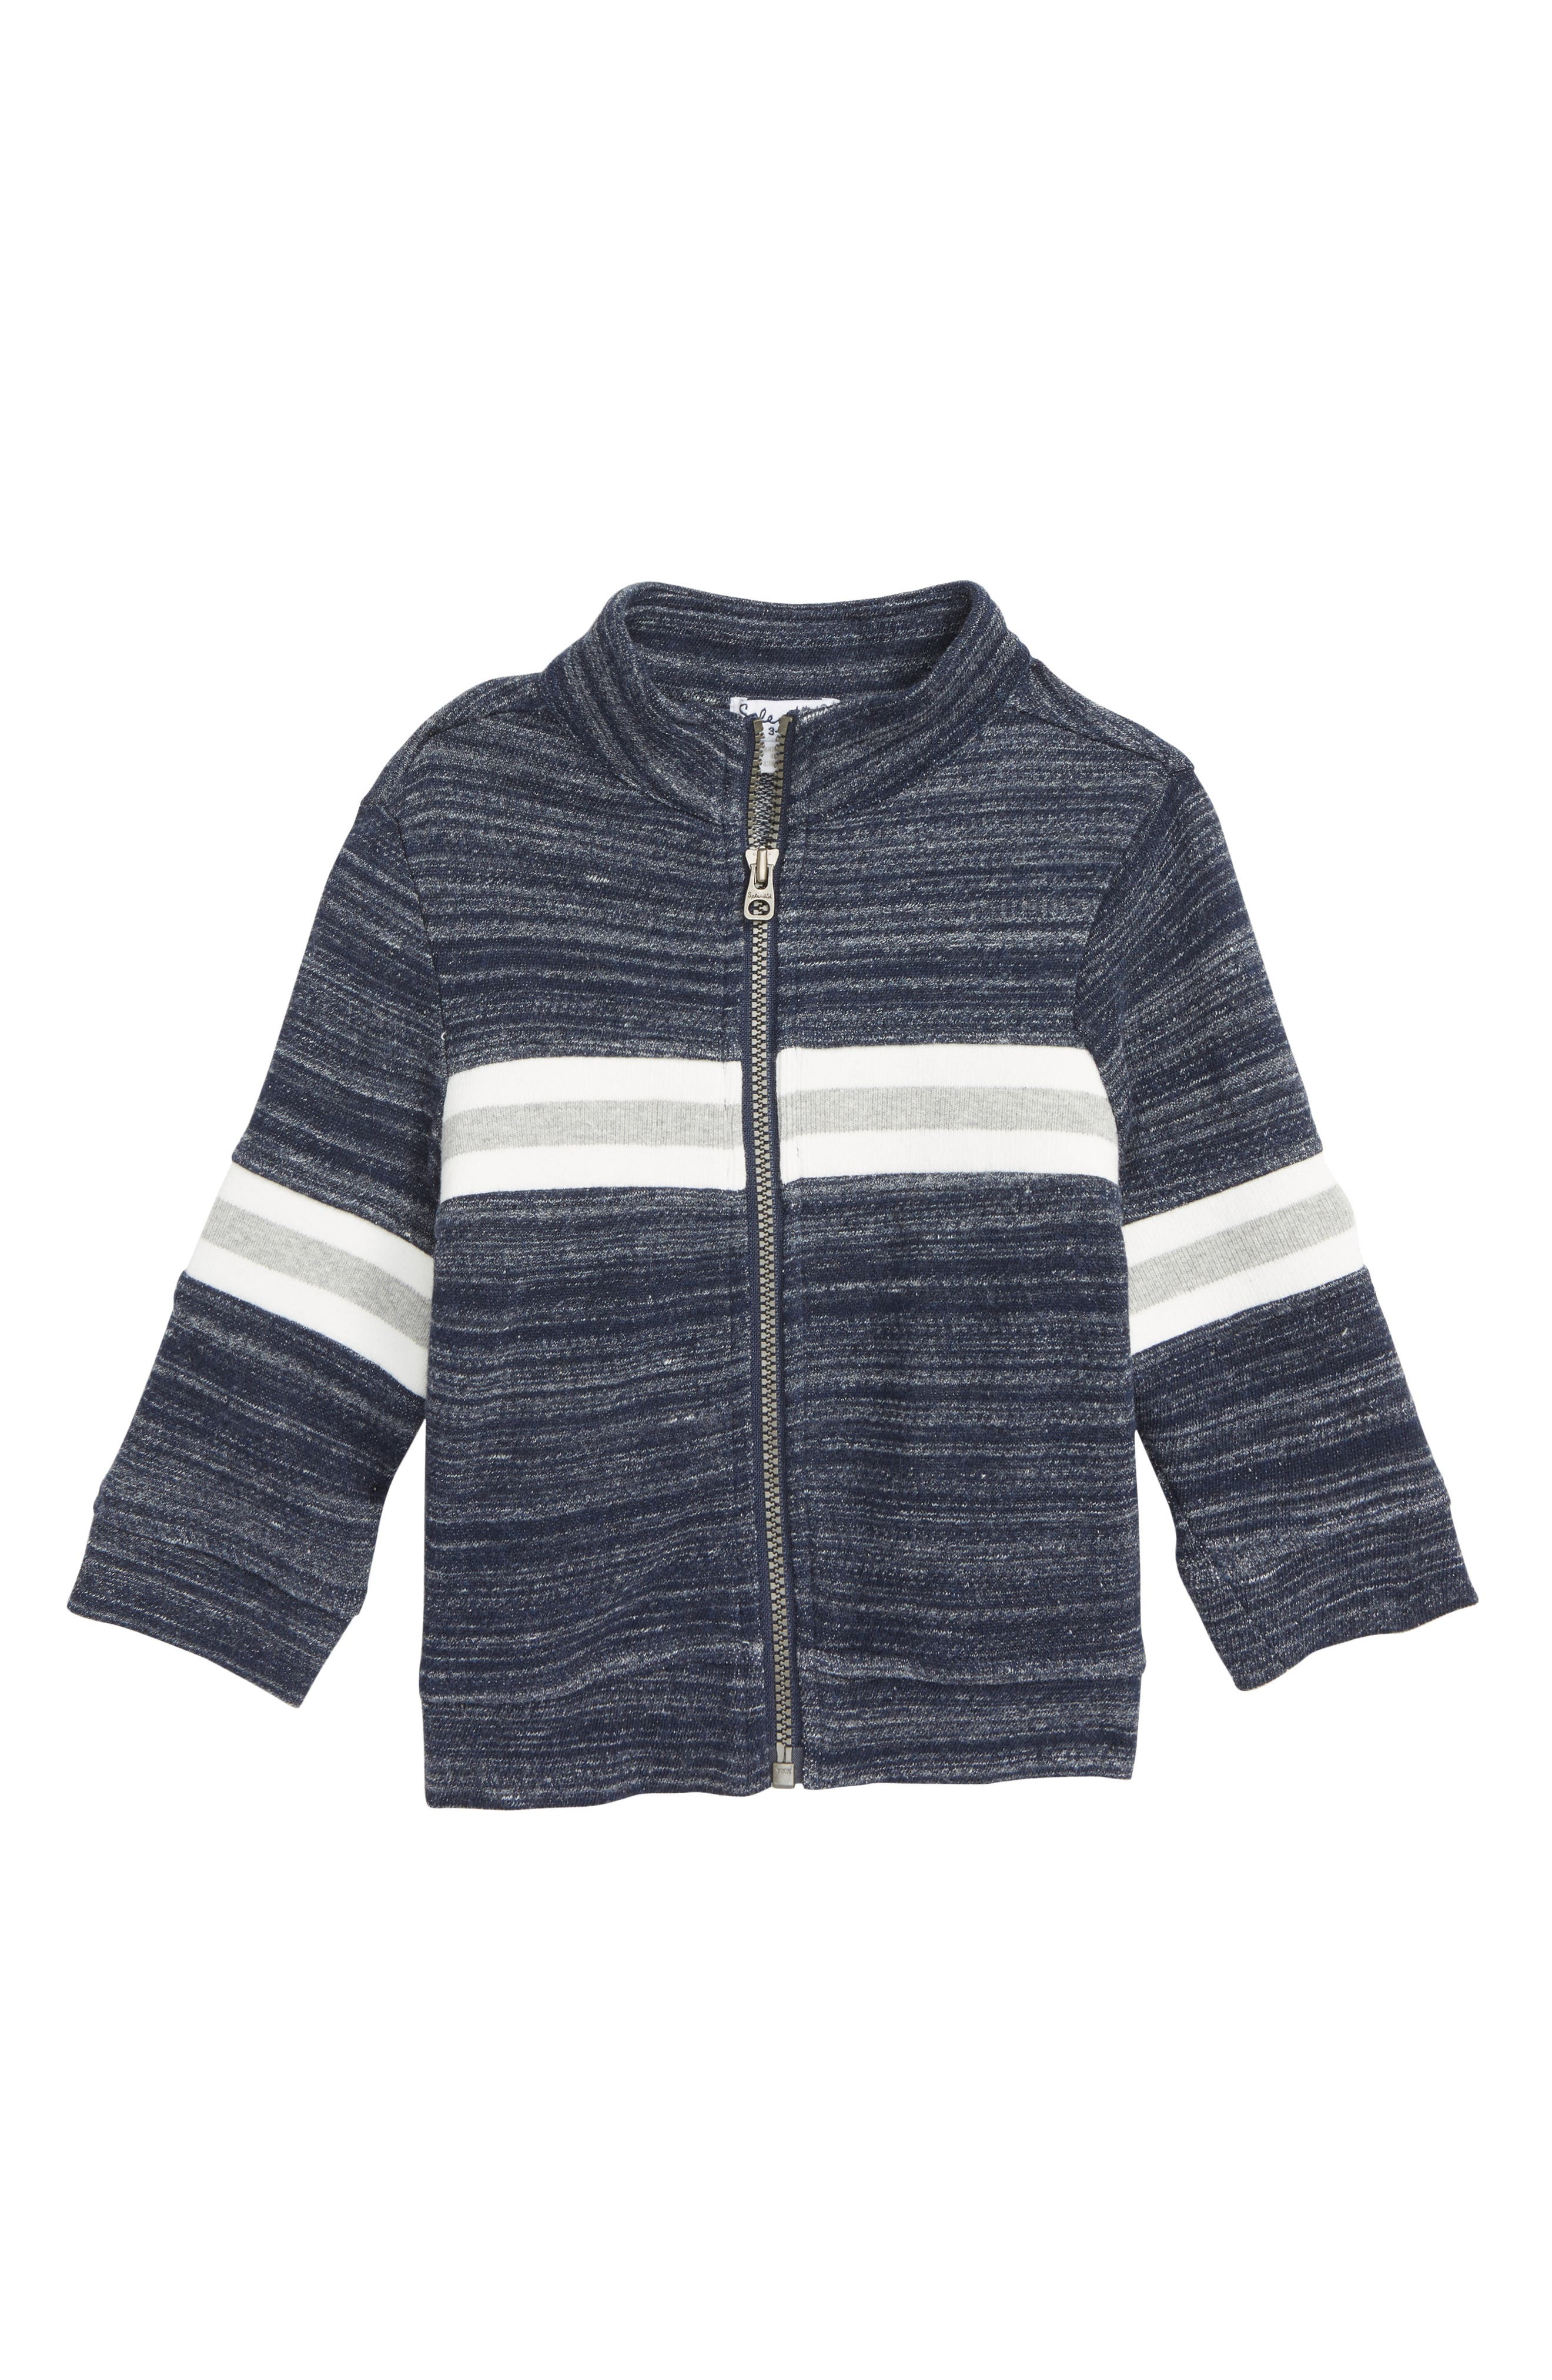 French Terry Jacket,                         Main,                         color, 411